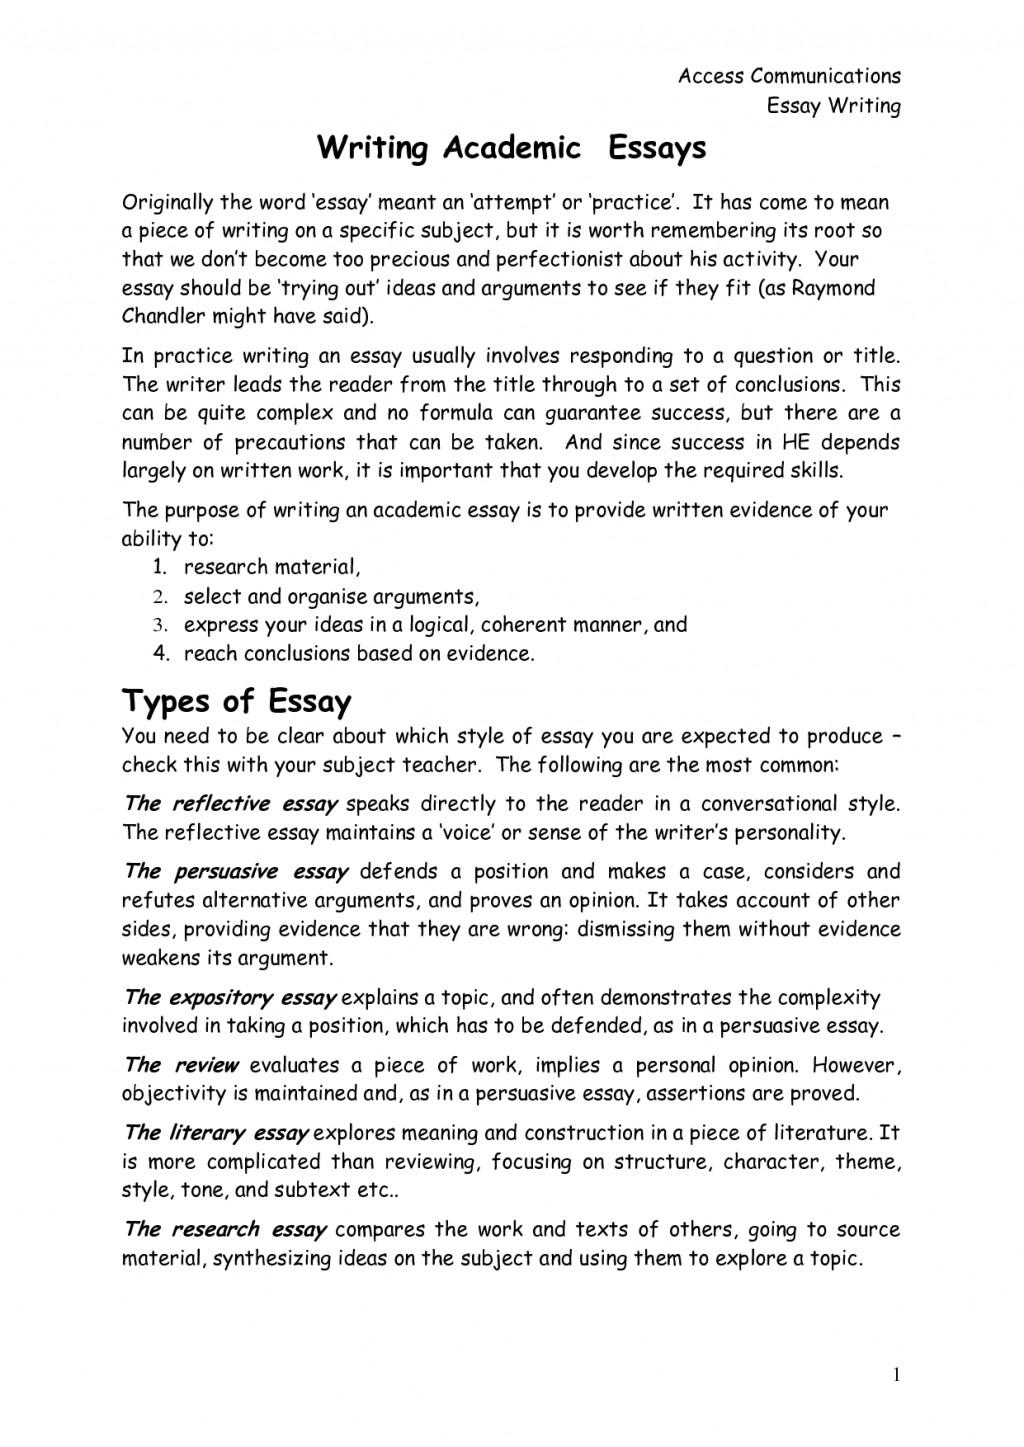 001 Example Academic Research Paper Essay Writing Sample Fuuwz Tense Format Pdf Examples Style Guide Topics Books Fascinating Large